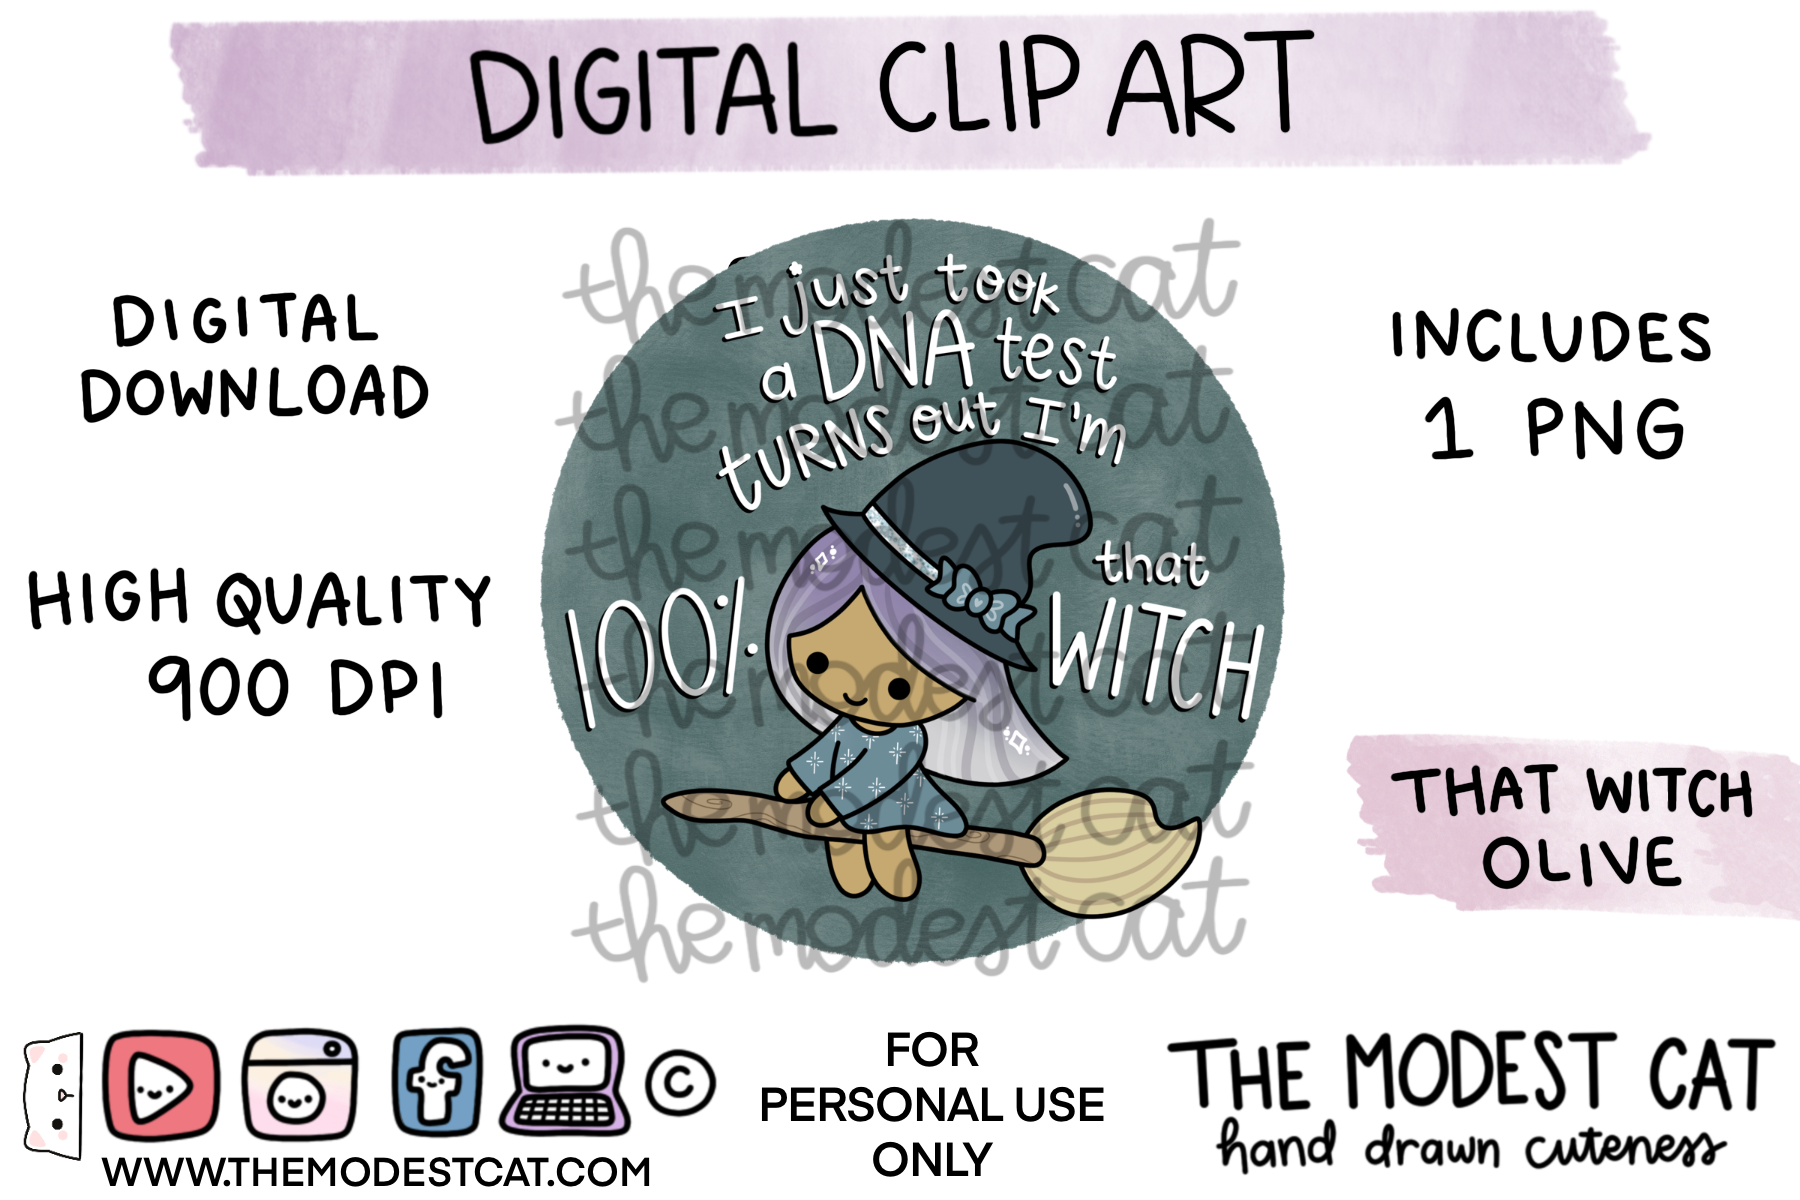 That Witch Olive - Digital Clip Art